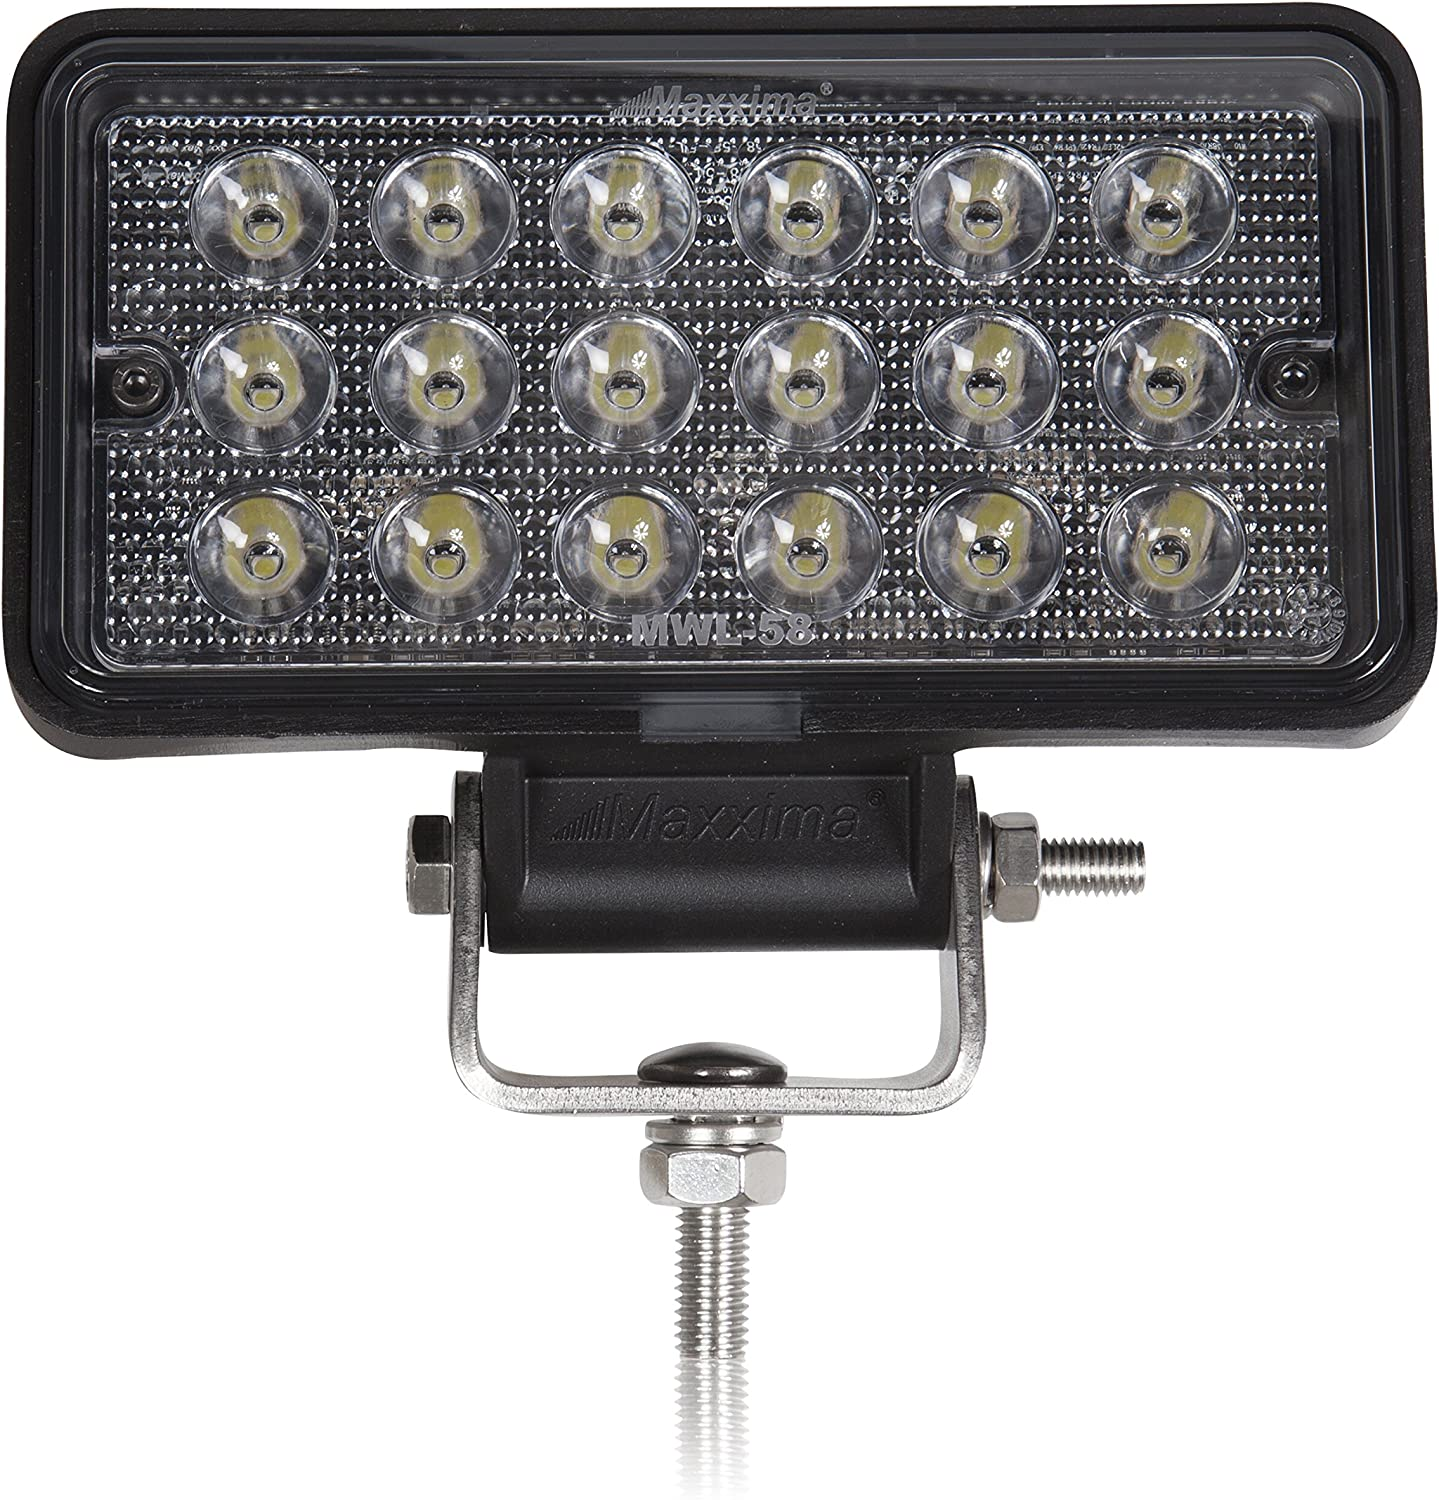 Maxxima MWL-57SP 8 LED Rectangular Flood Beam Work Light 2,150 Lumens